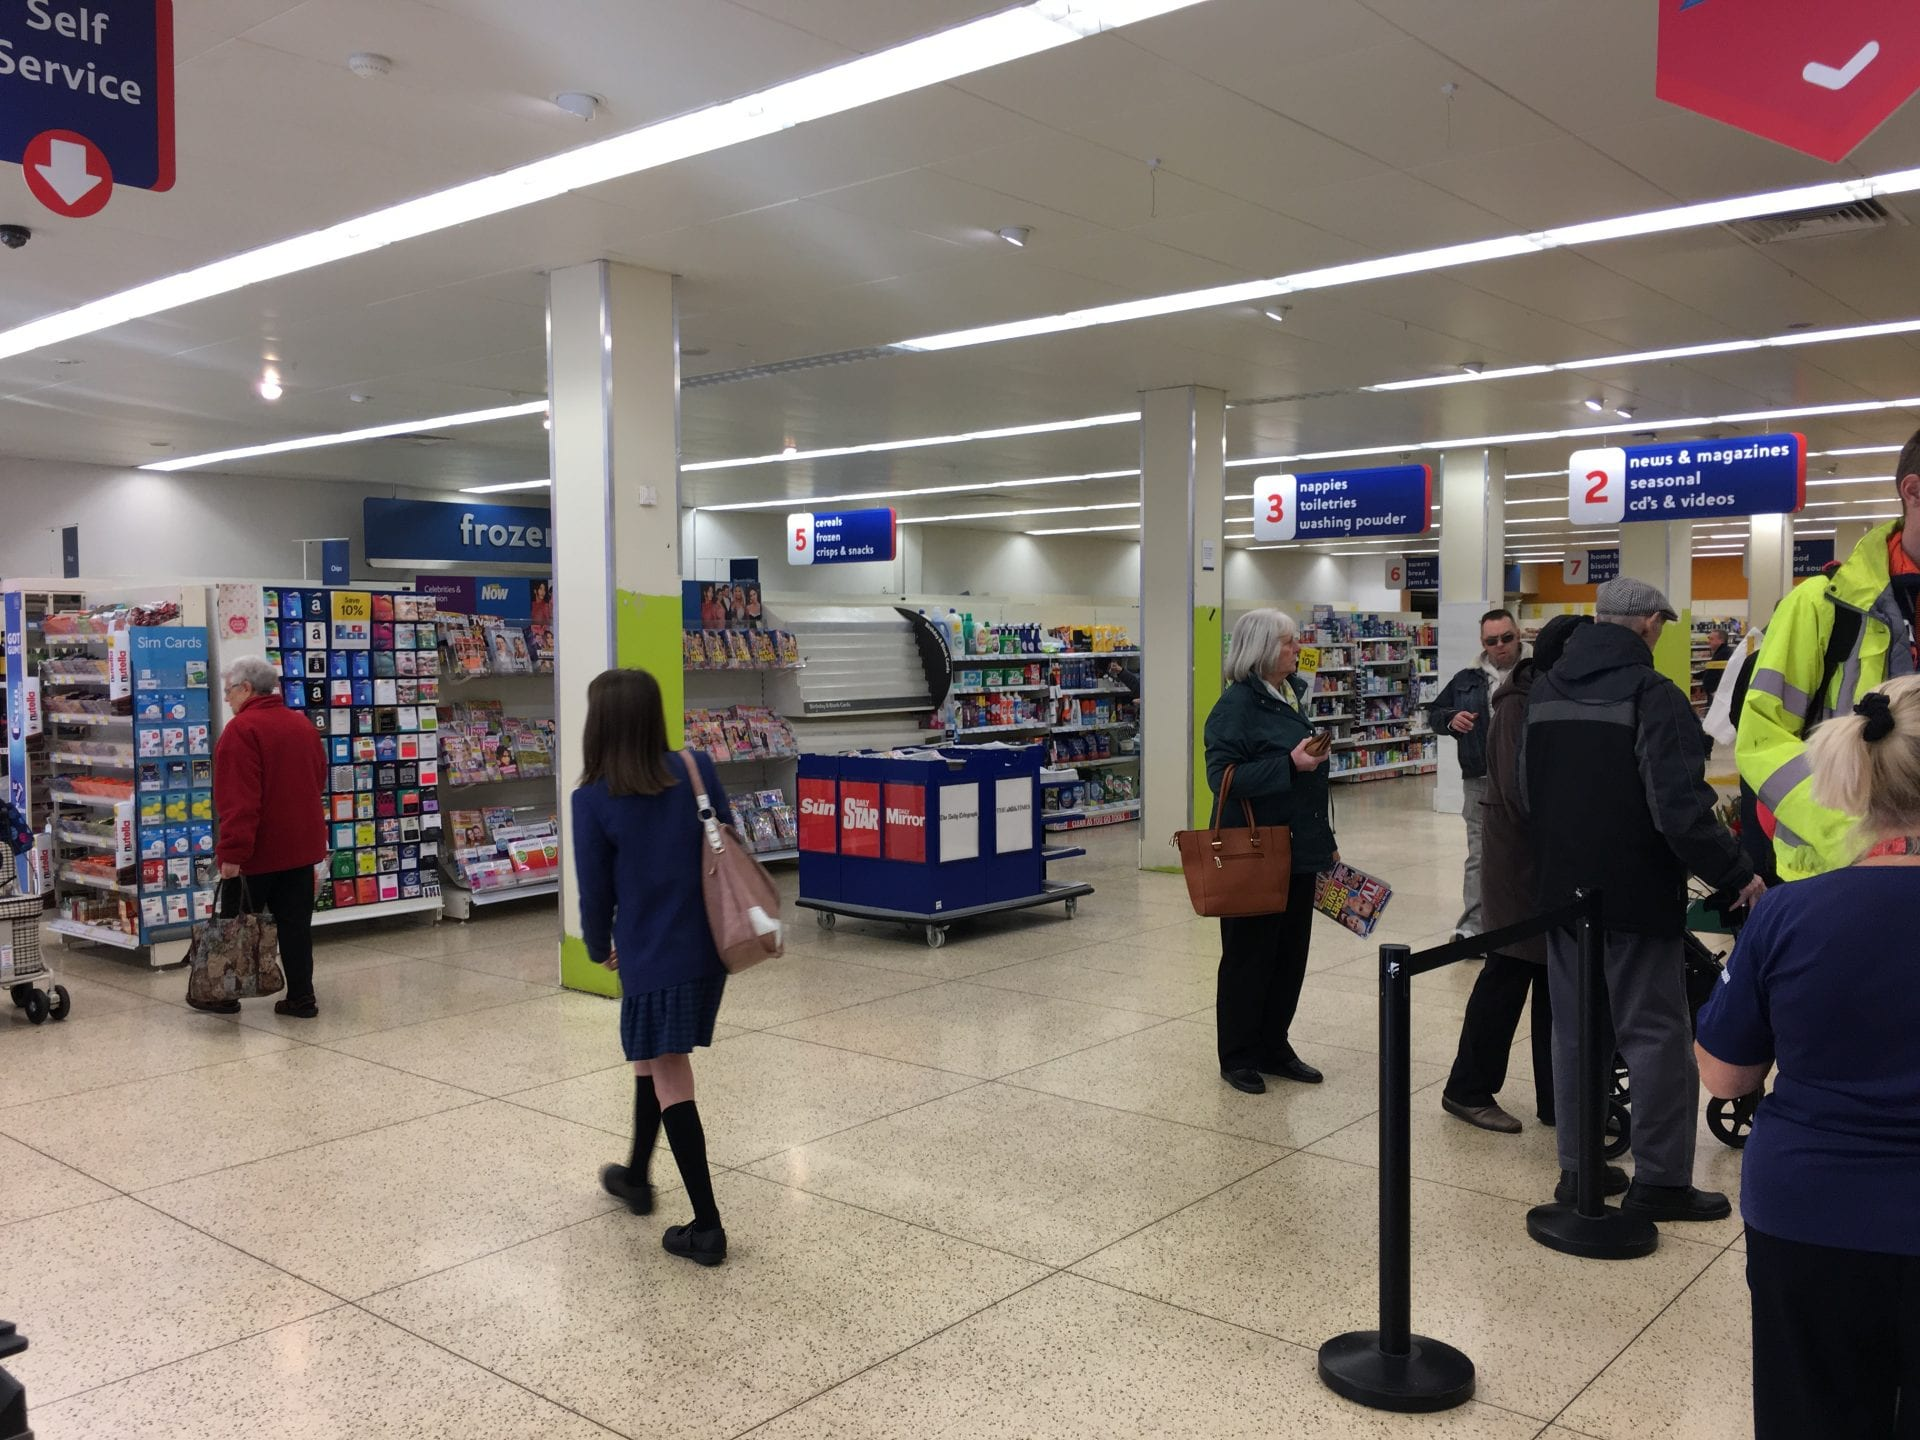 ae6b2911fe2156 The Future is Bright for Cleveleys Tesco! - Visit Cleveleys